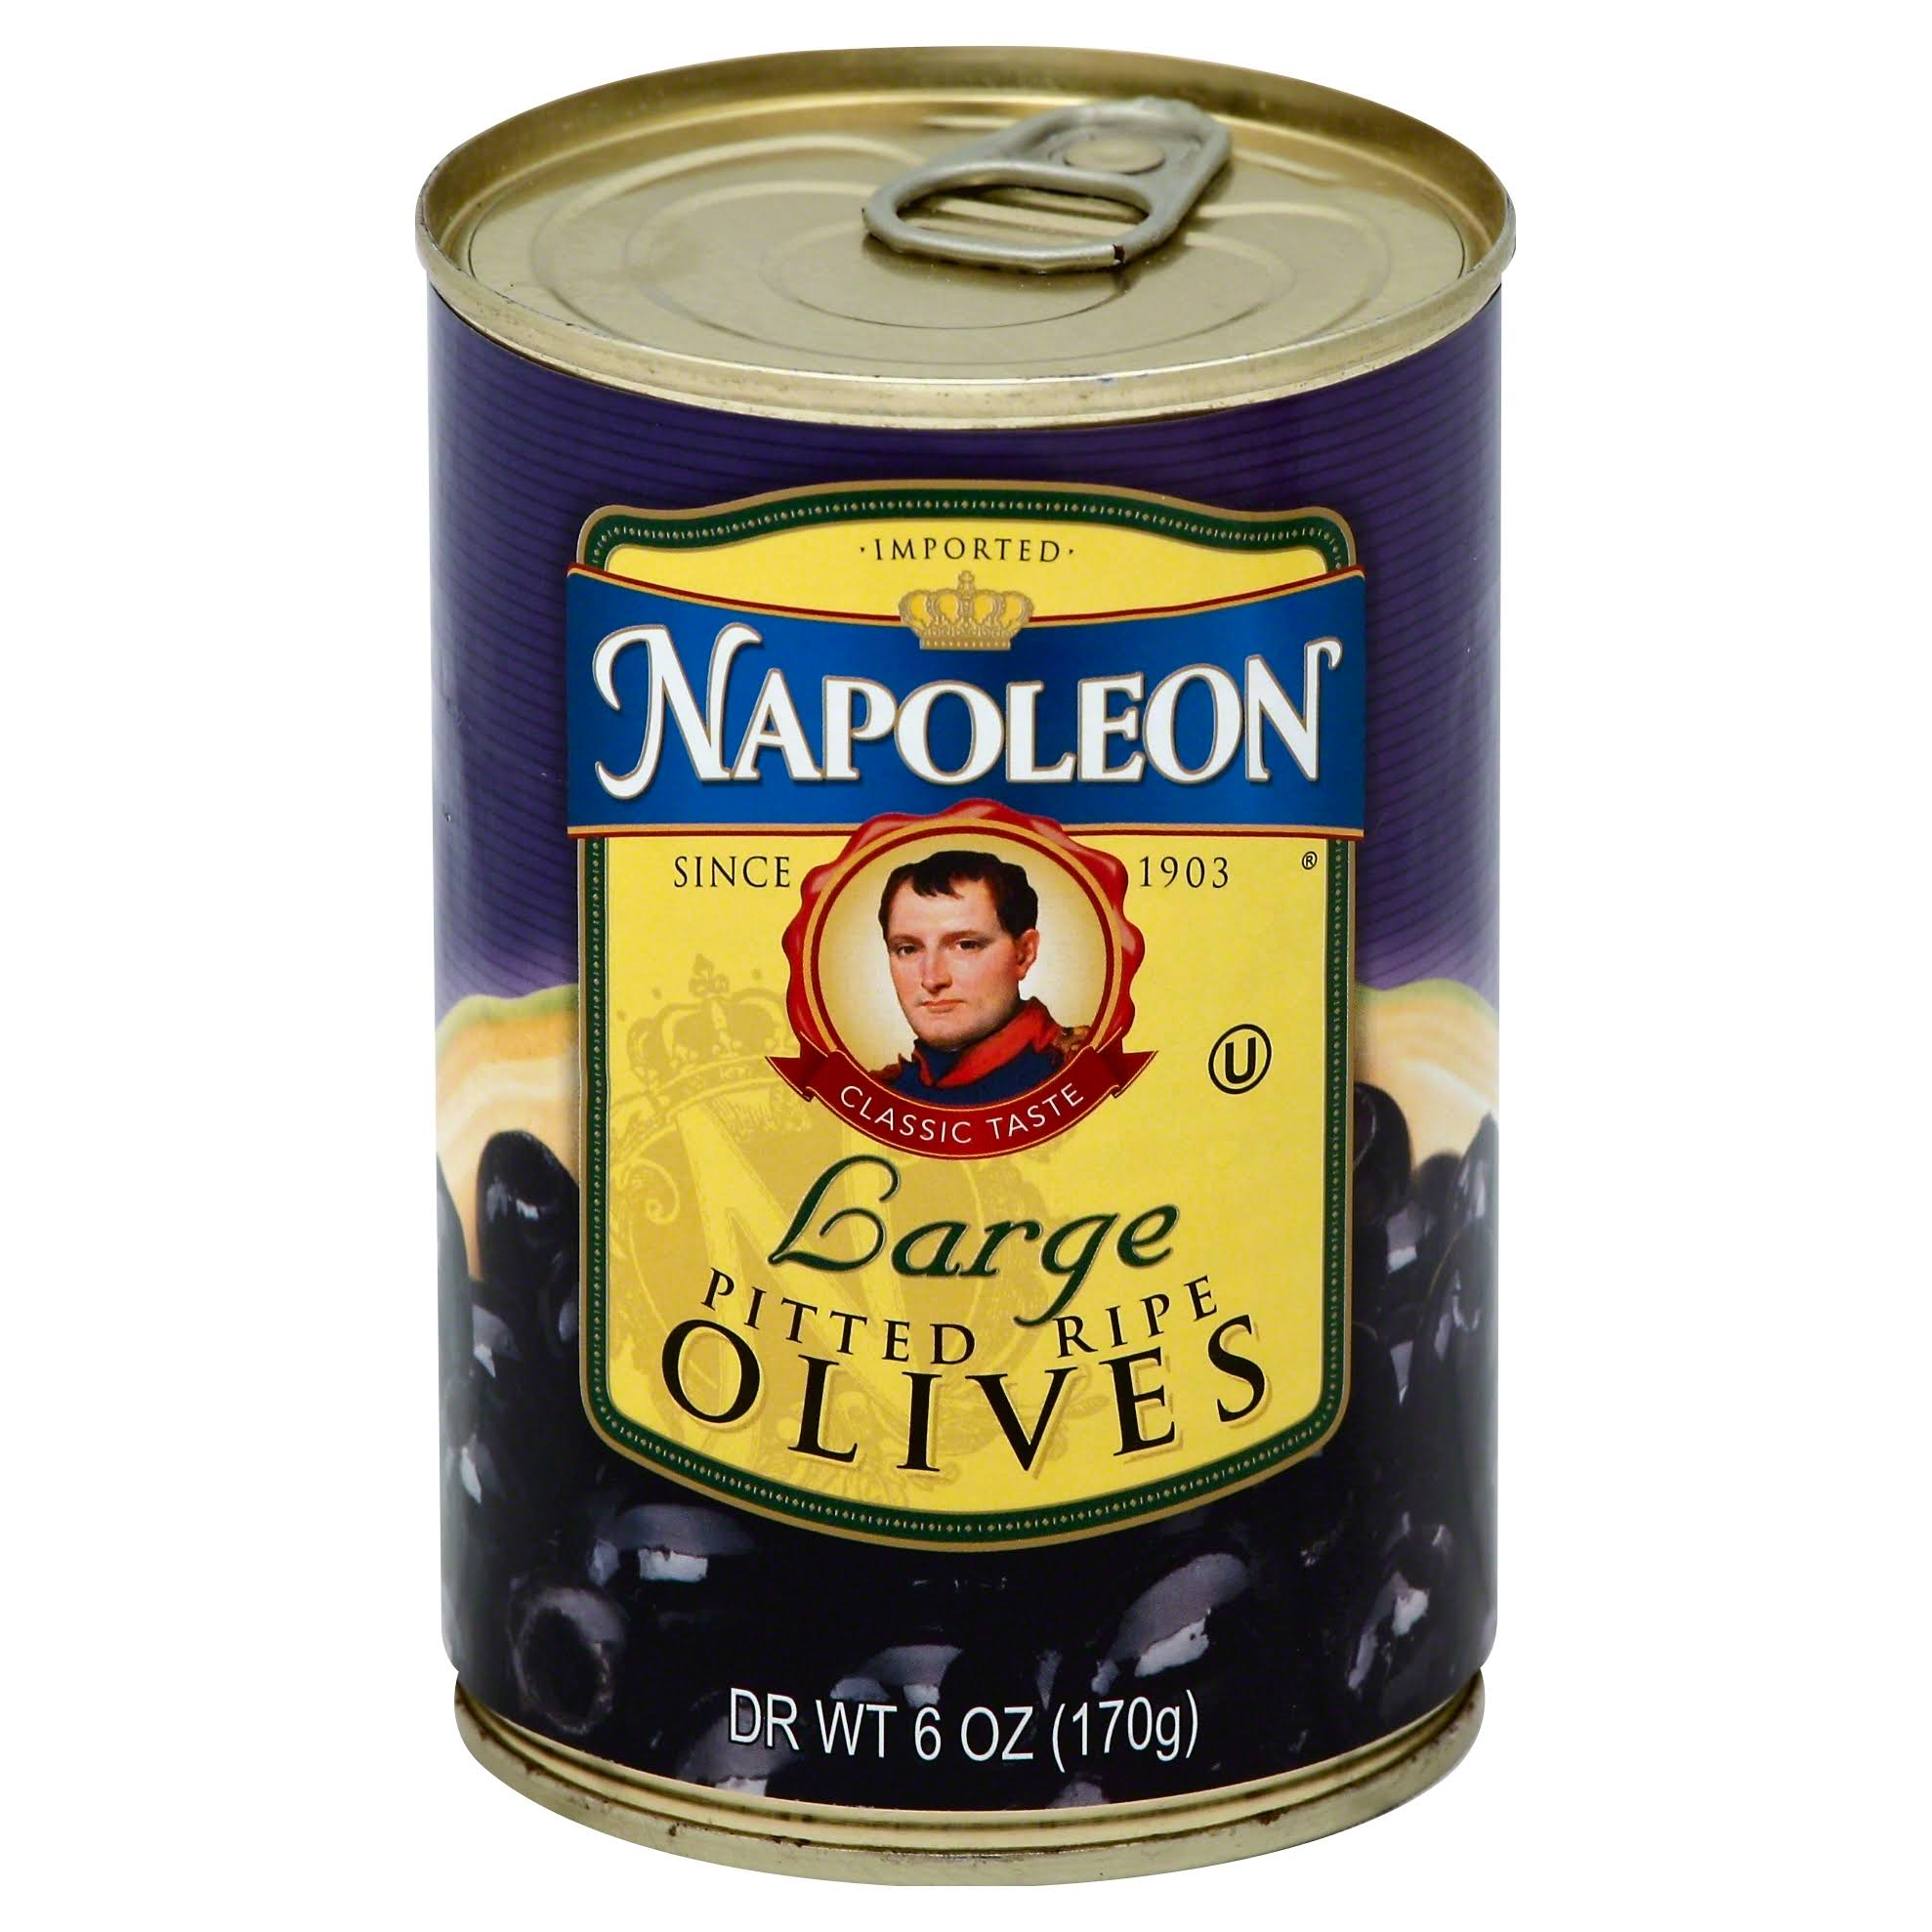 Napoleon Large Black Pitted Olives - 6oz